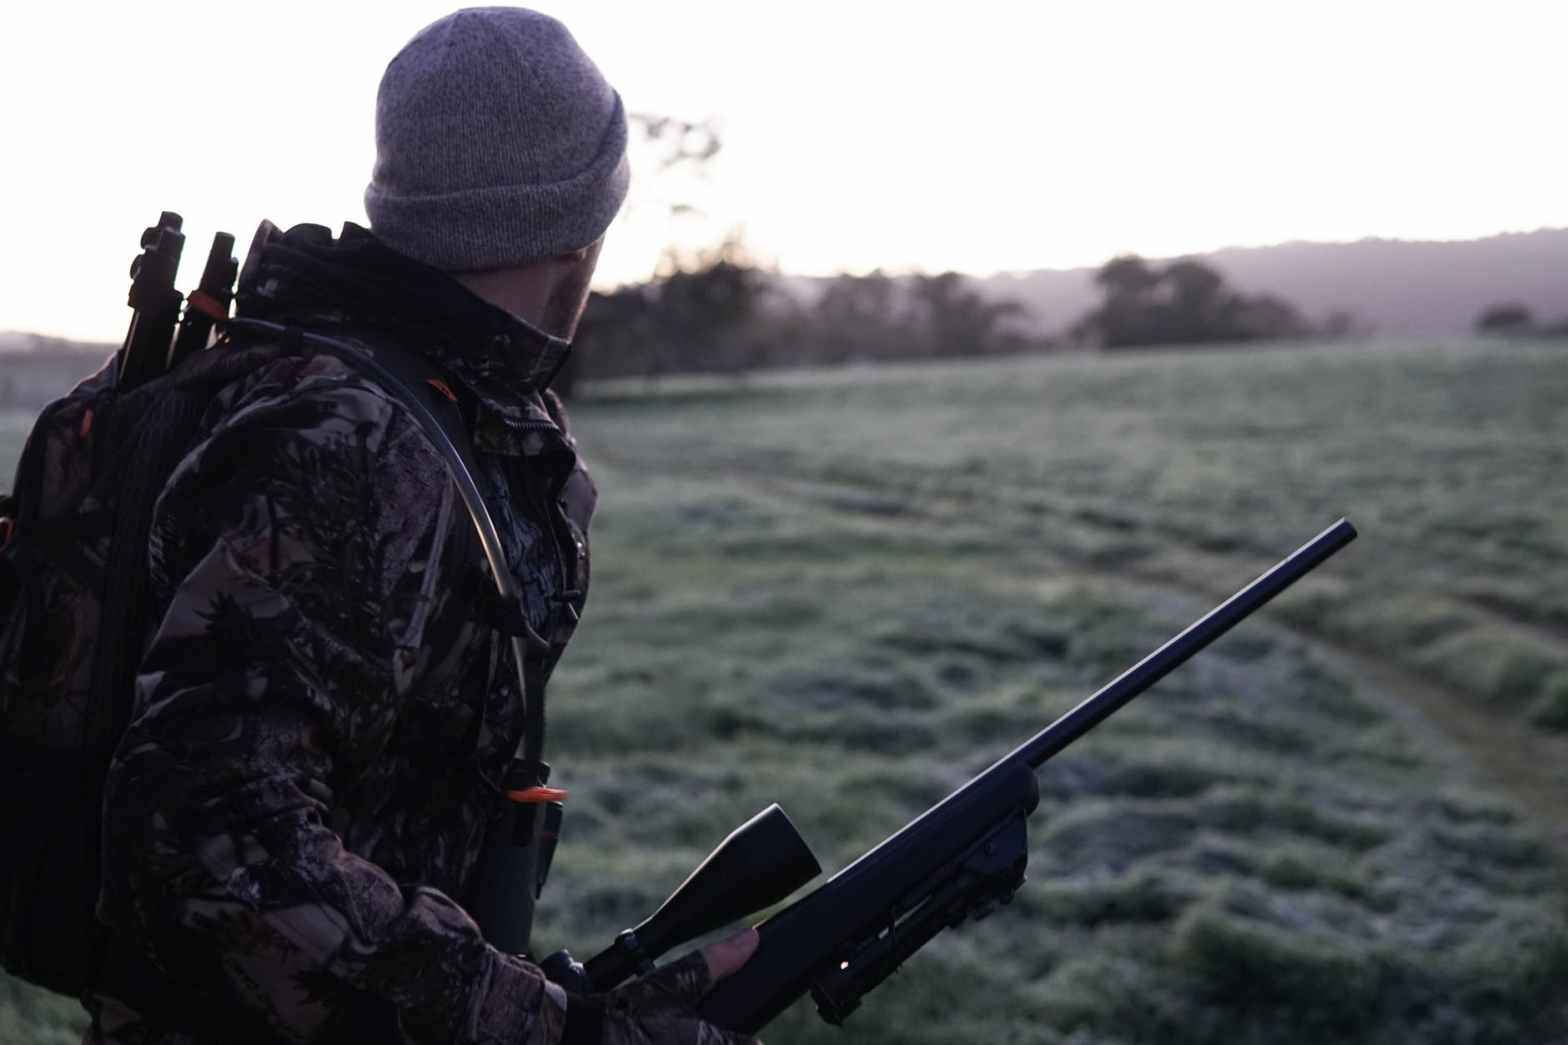 man wearing gray and black camouflage jacket holding rifle walking on grass field